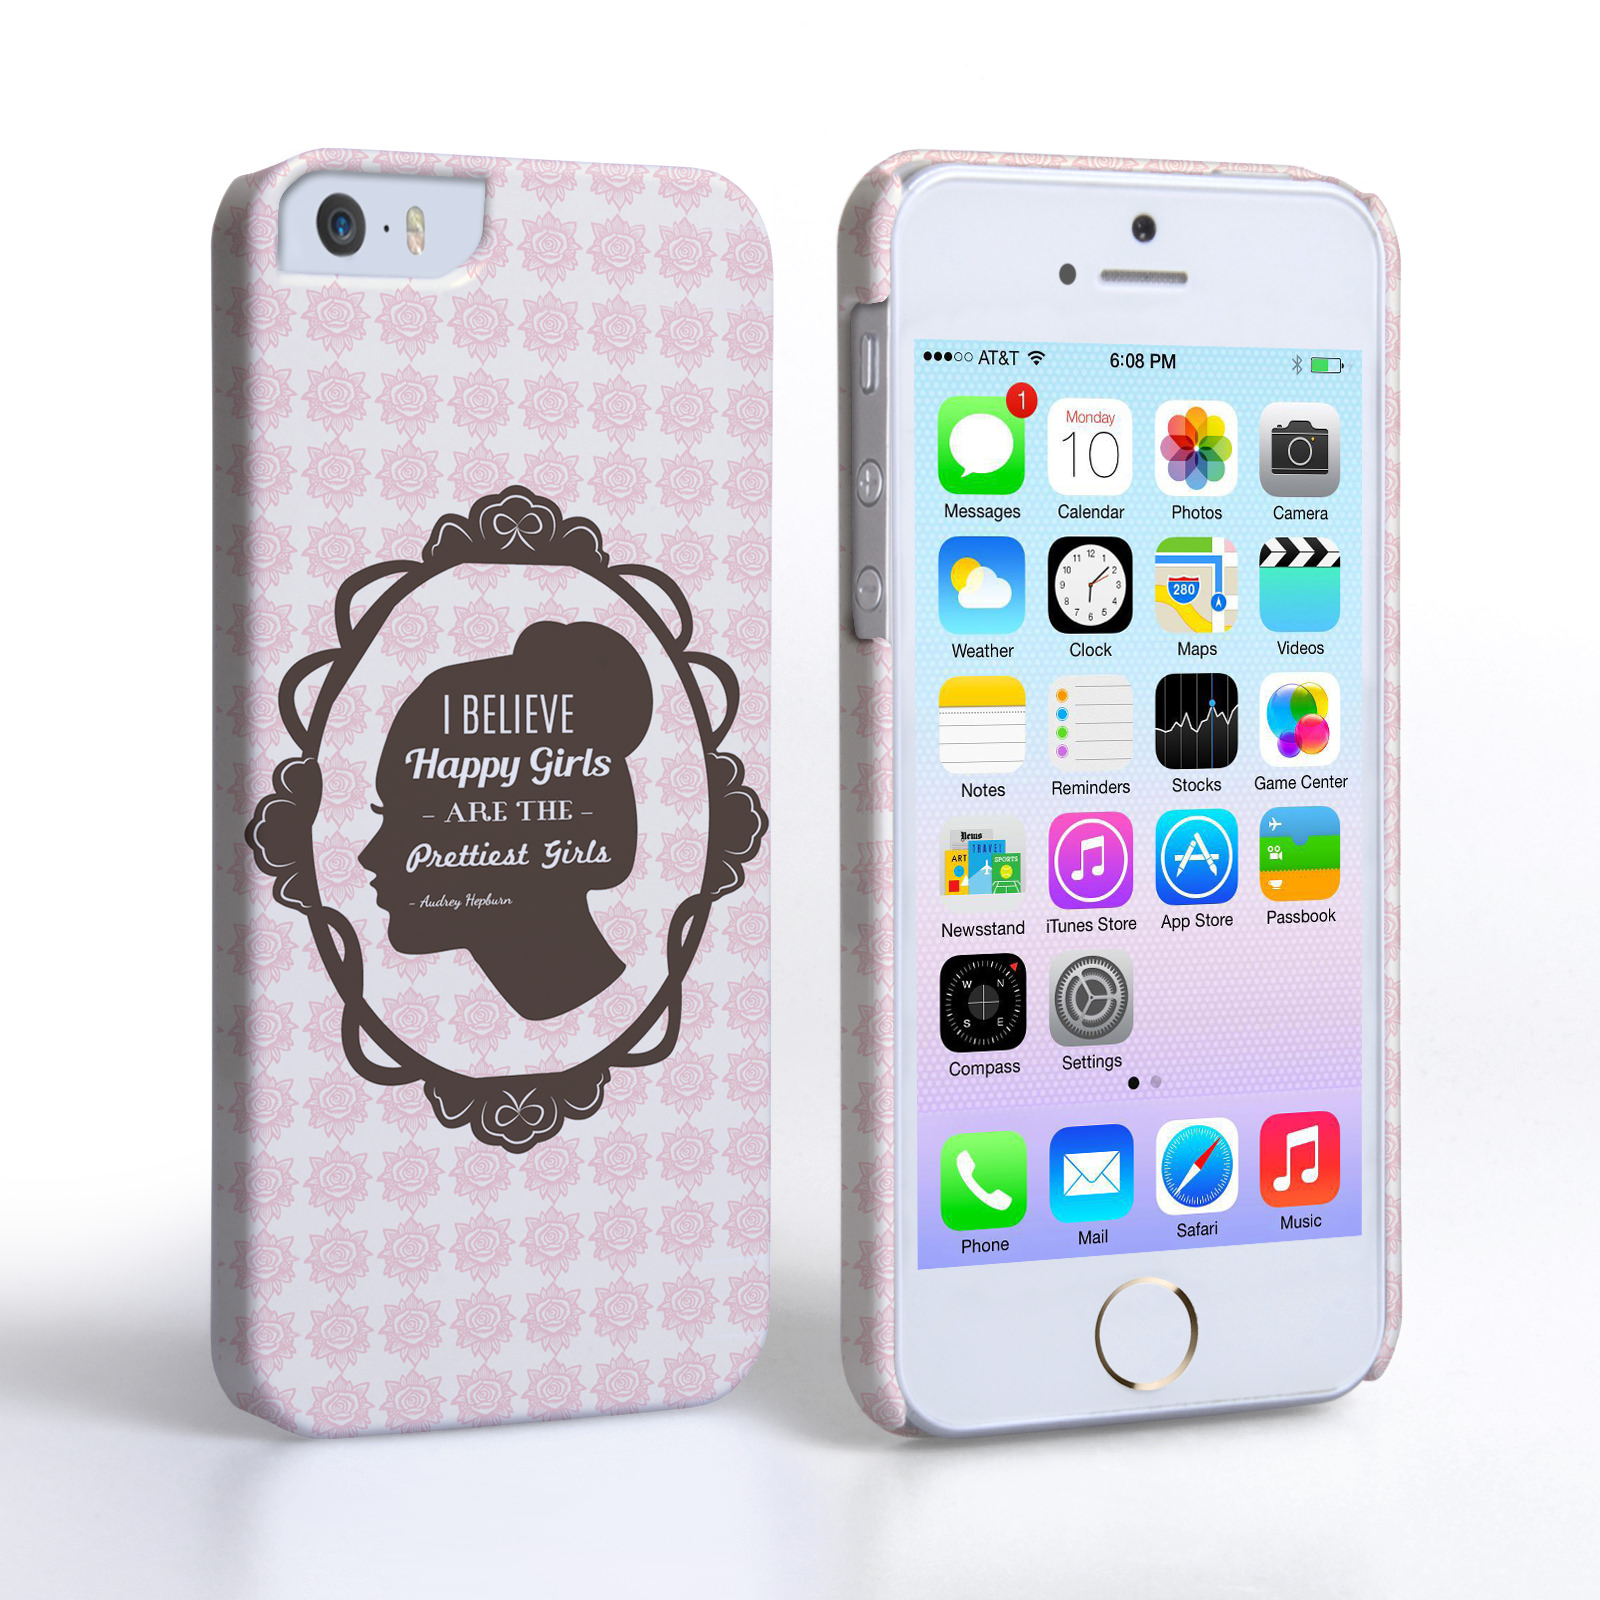 Caseflex iPhone SE Audrey Hepburn 'Happy Girls' Quote Case